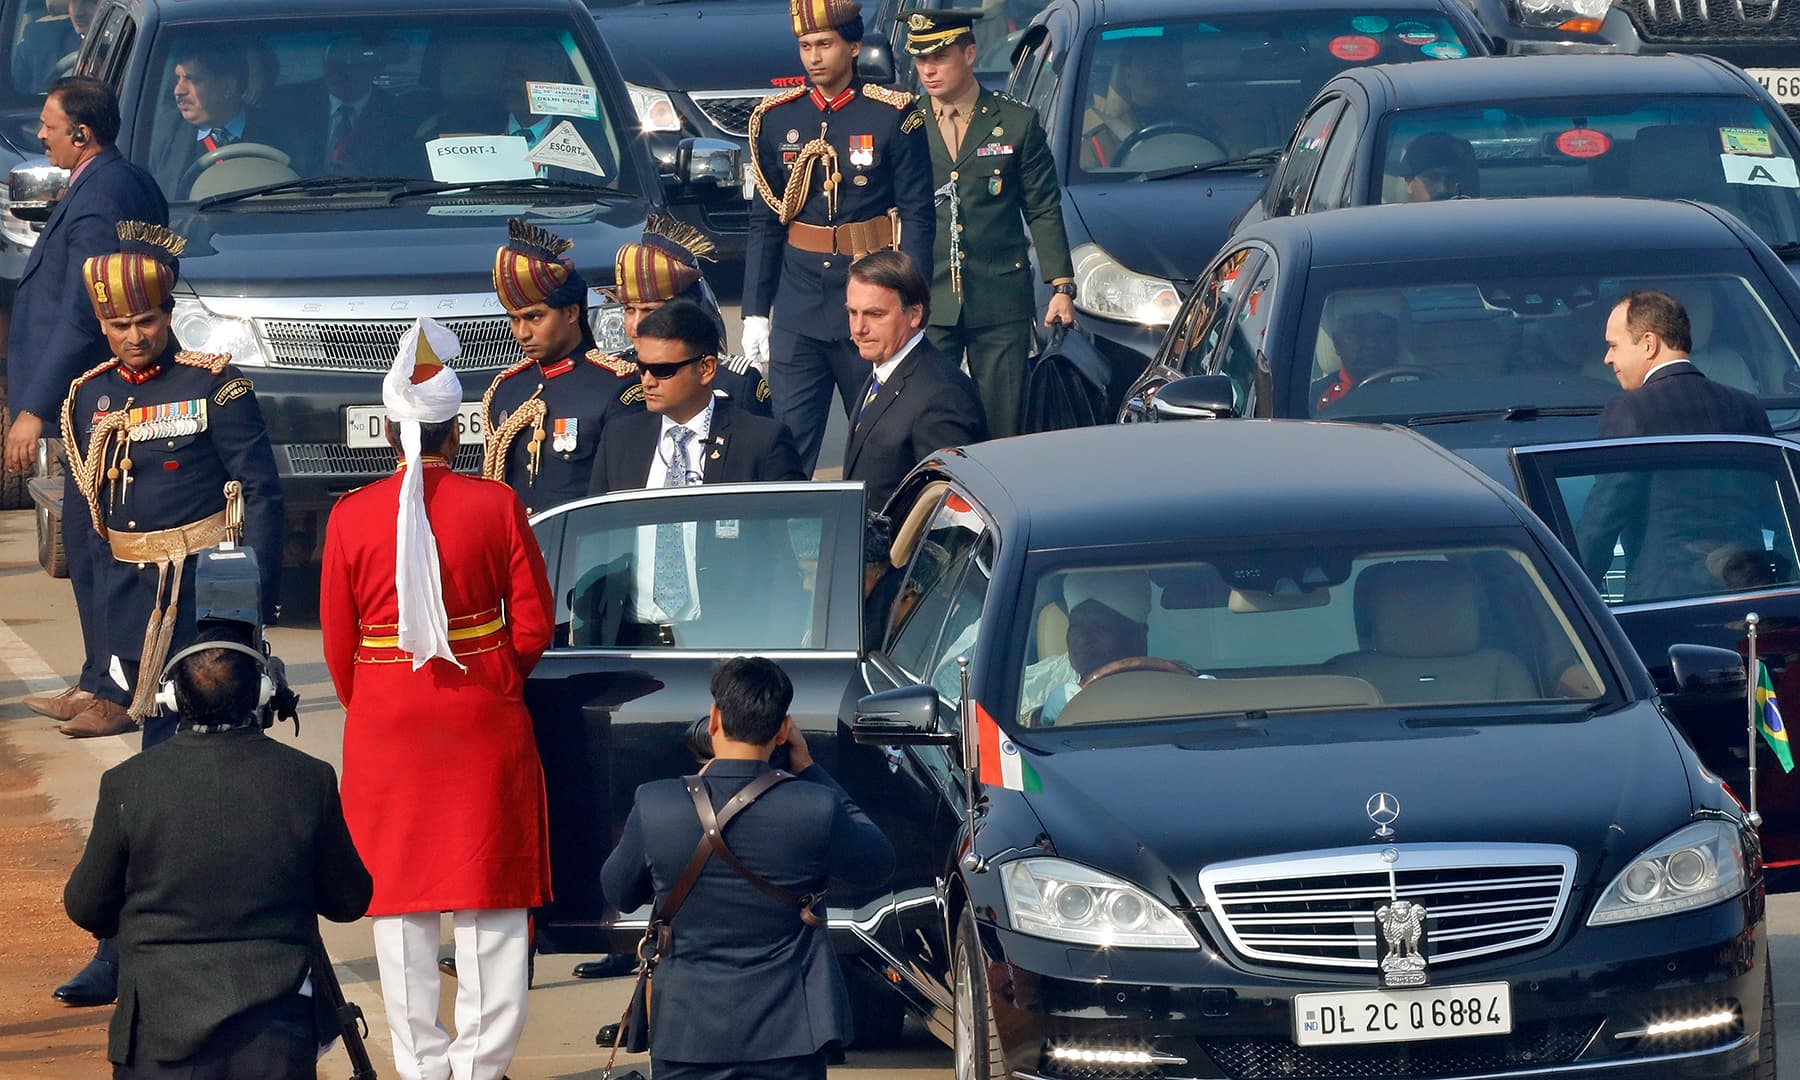 Brazil's President Jair Bolsonaro arrives to attend India's Republic Day parade in New Delhi, India. — Reuters